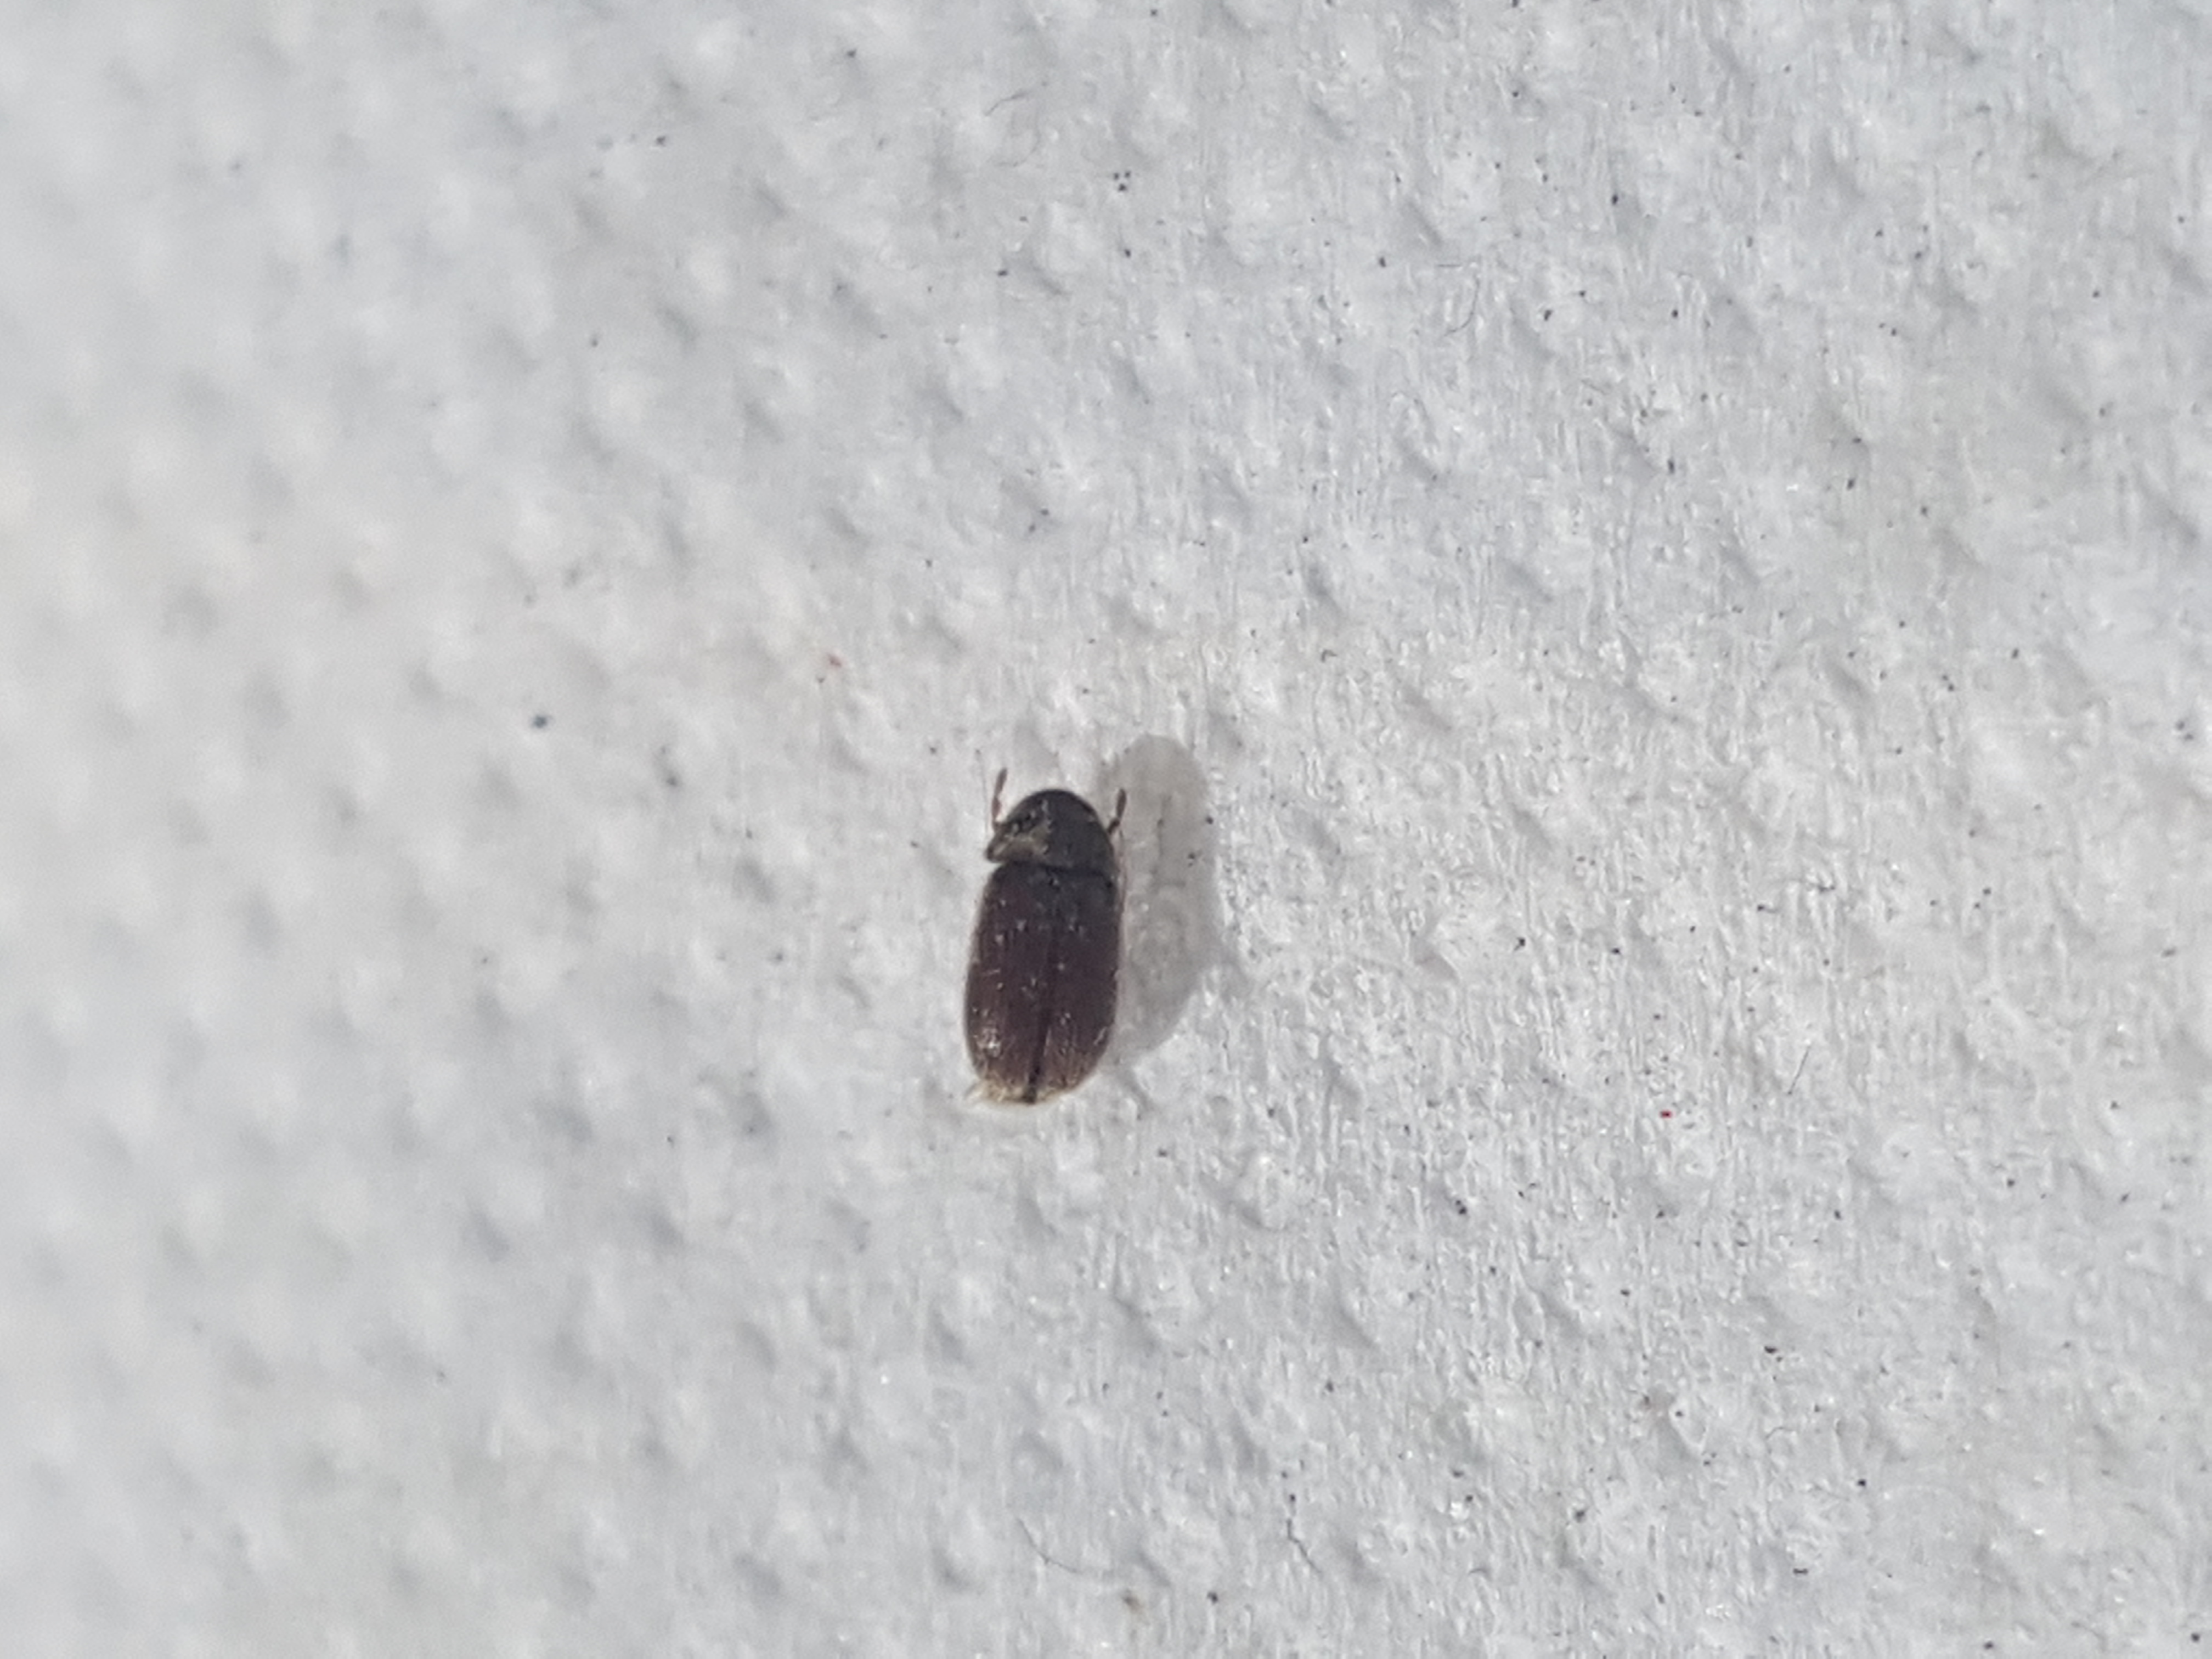 Natureplus Please Help Id These Small Black Flying Bugs On Window